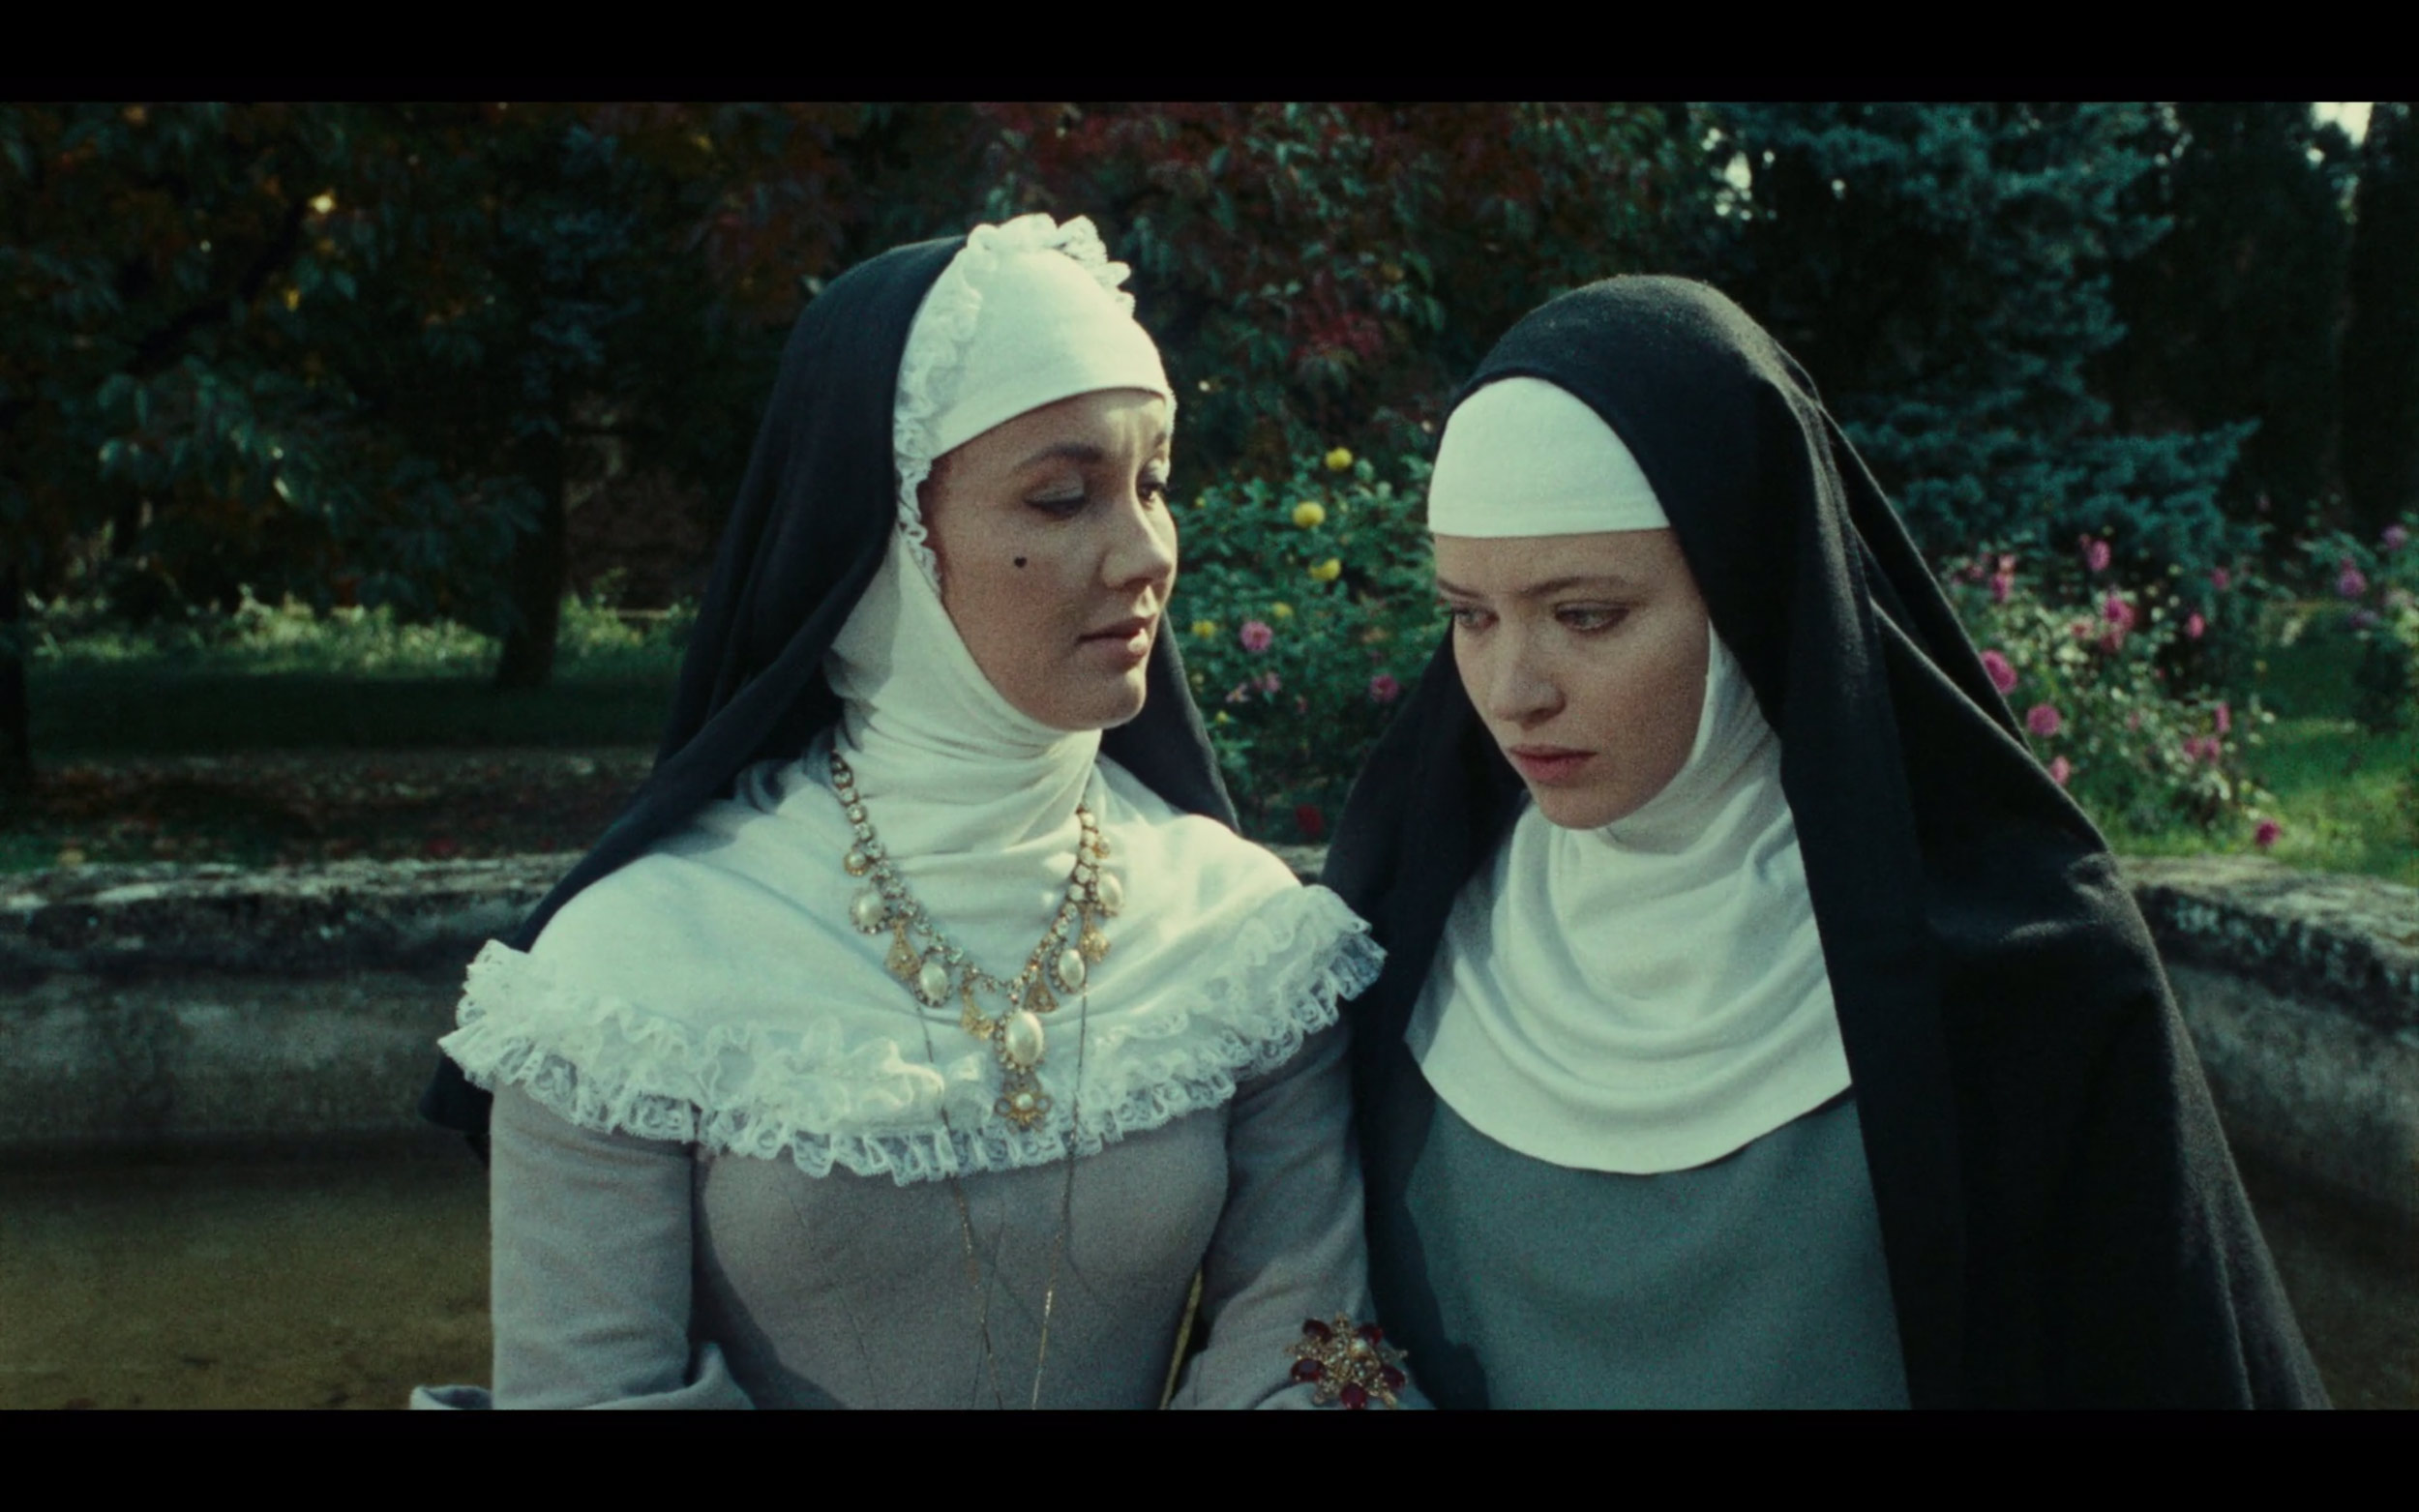 Watching 'Nunsploitation' films in the age of anxiety and isolation